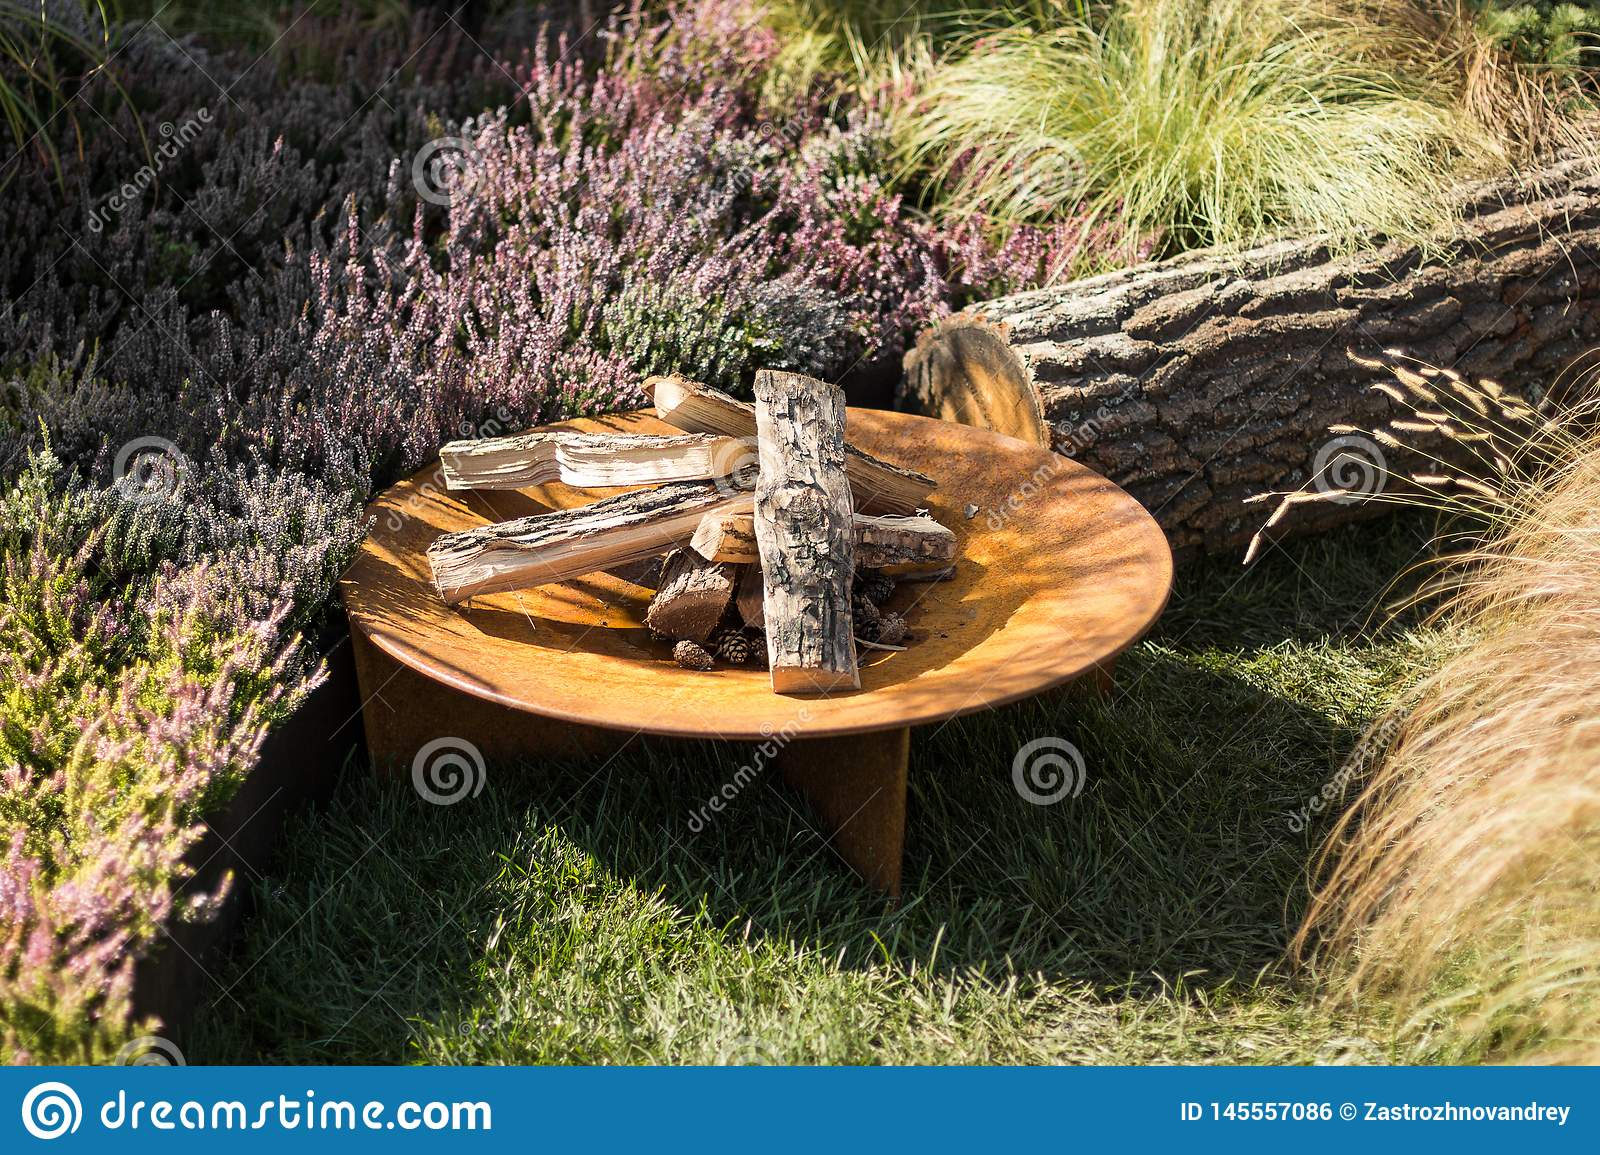 A place for a fire in the garden, dry firewood and flowers